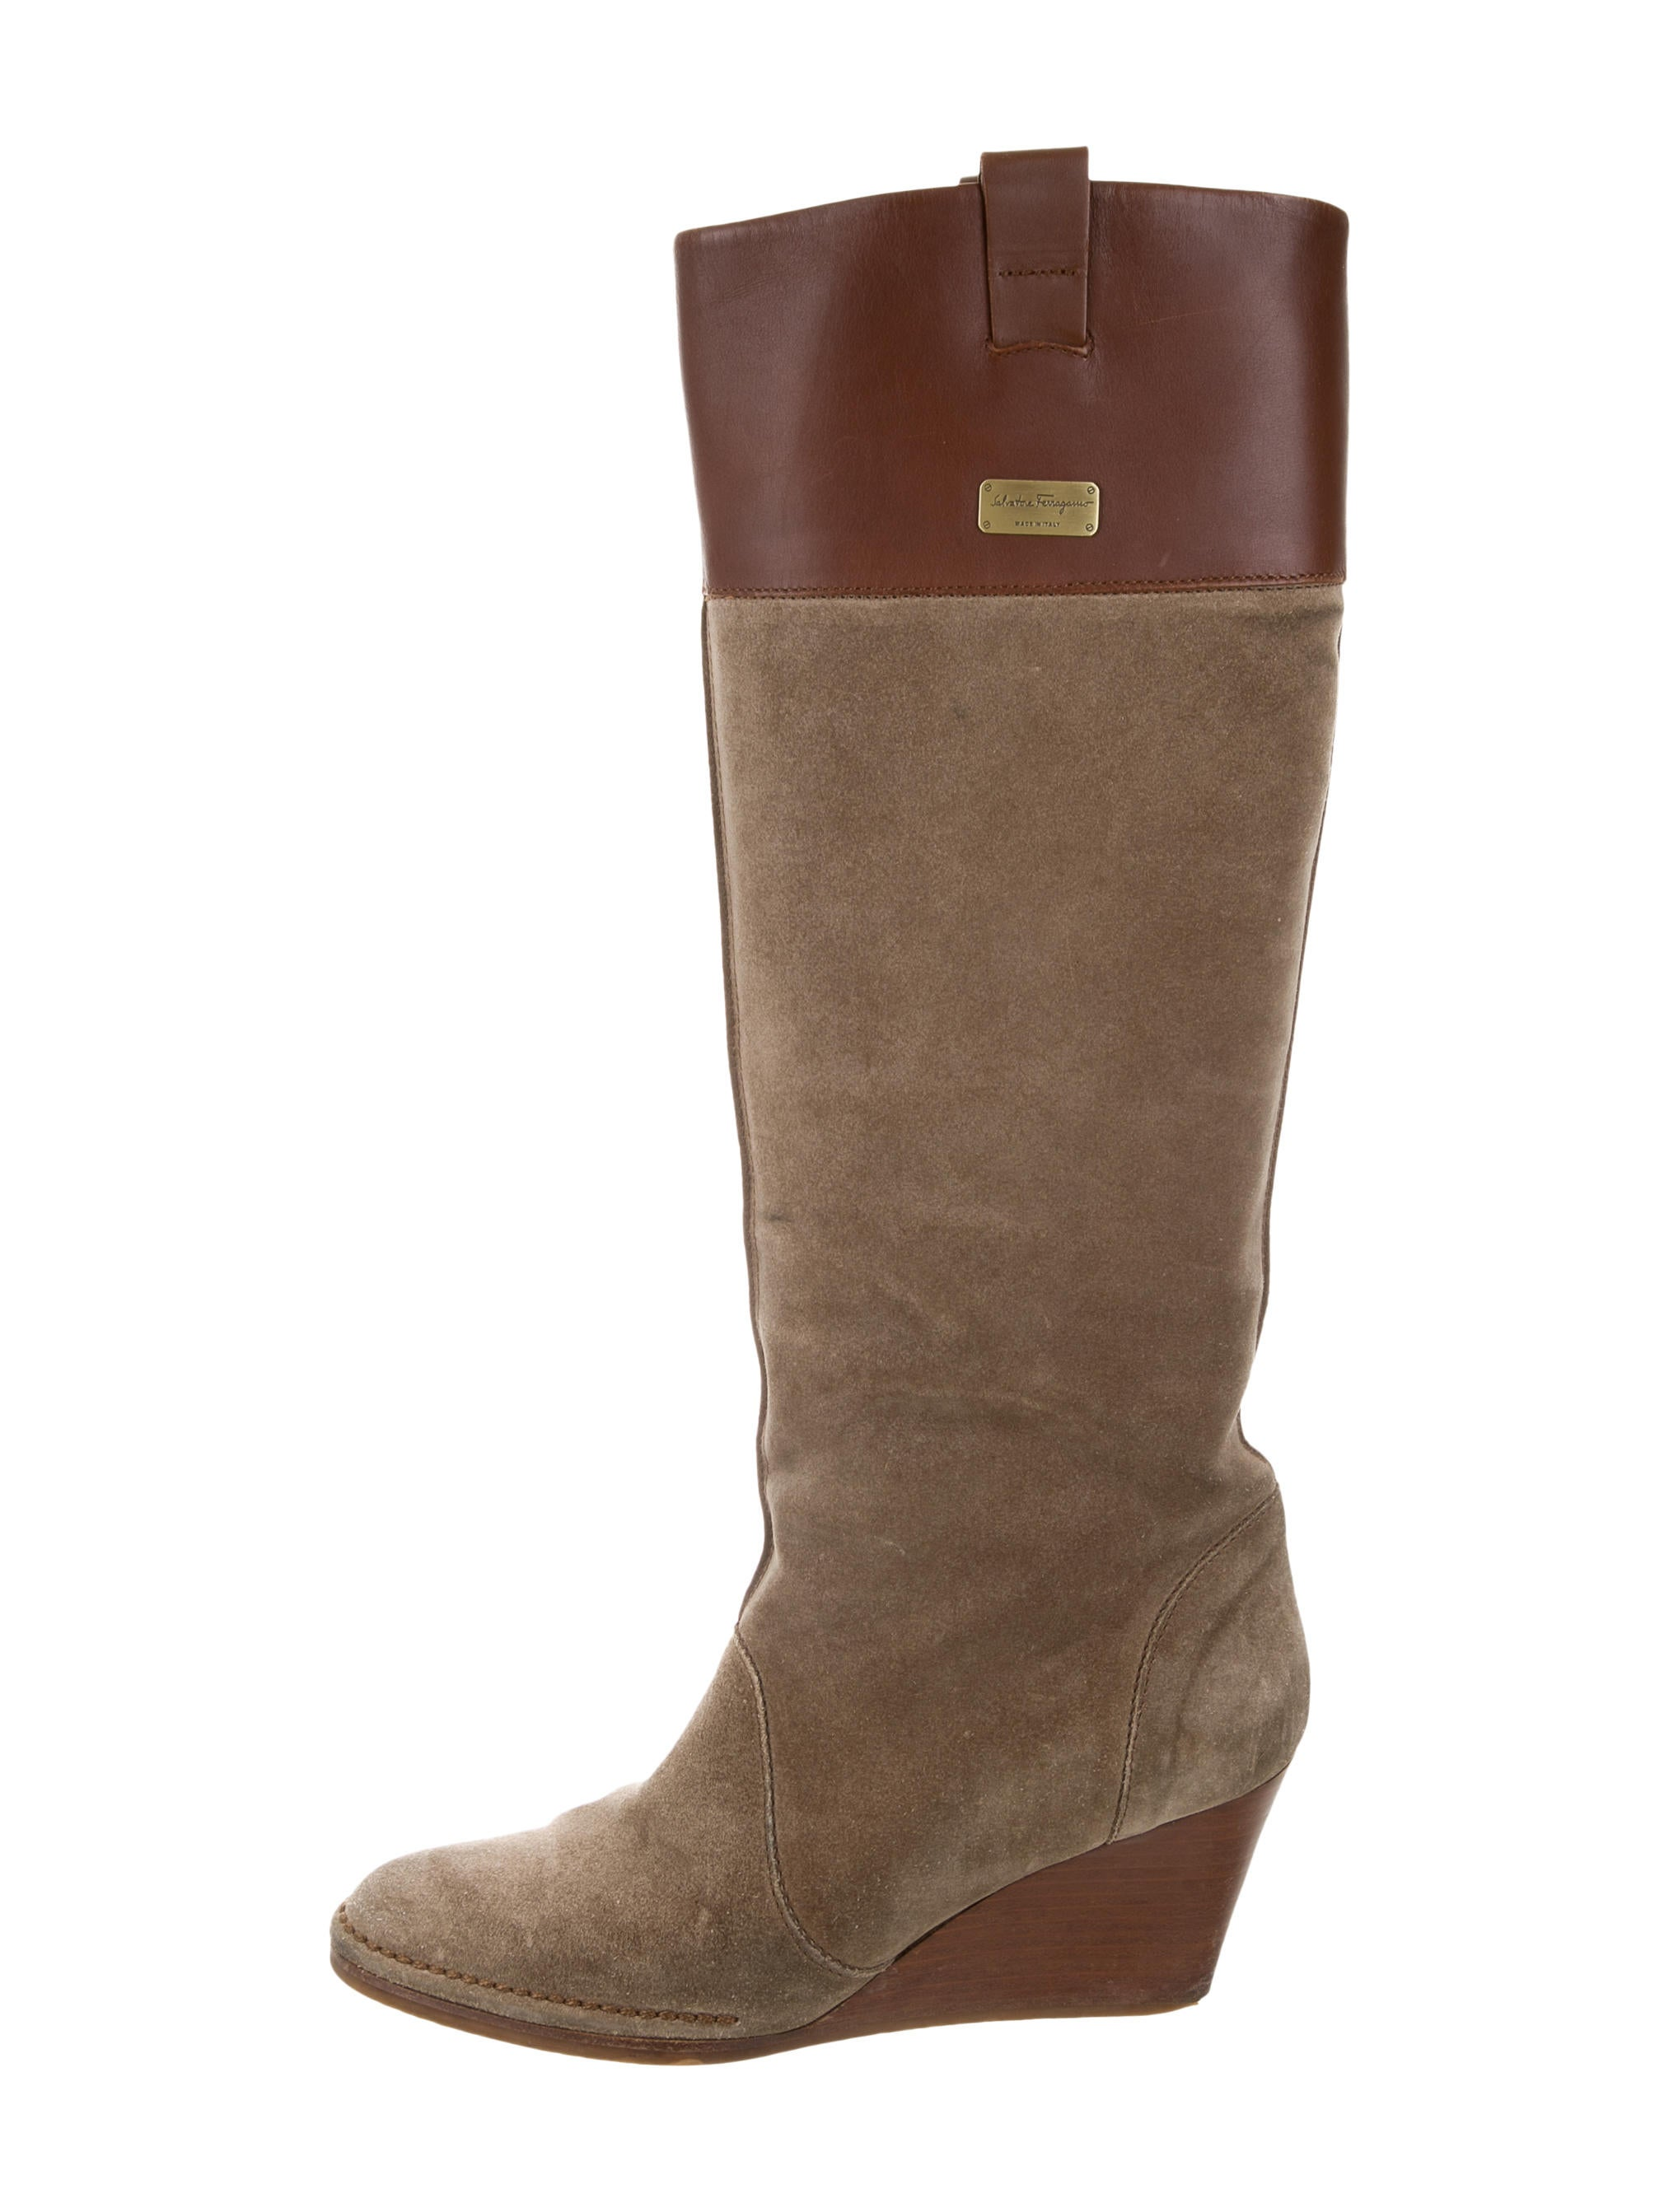 Shop only the best Boots & Booties for Women at Forever Find everything from on-trend ankle boots to over-the-knee boots in sleek and embellished designs.